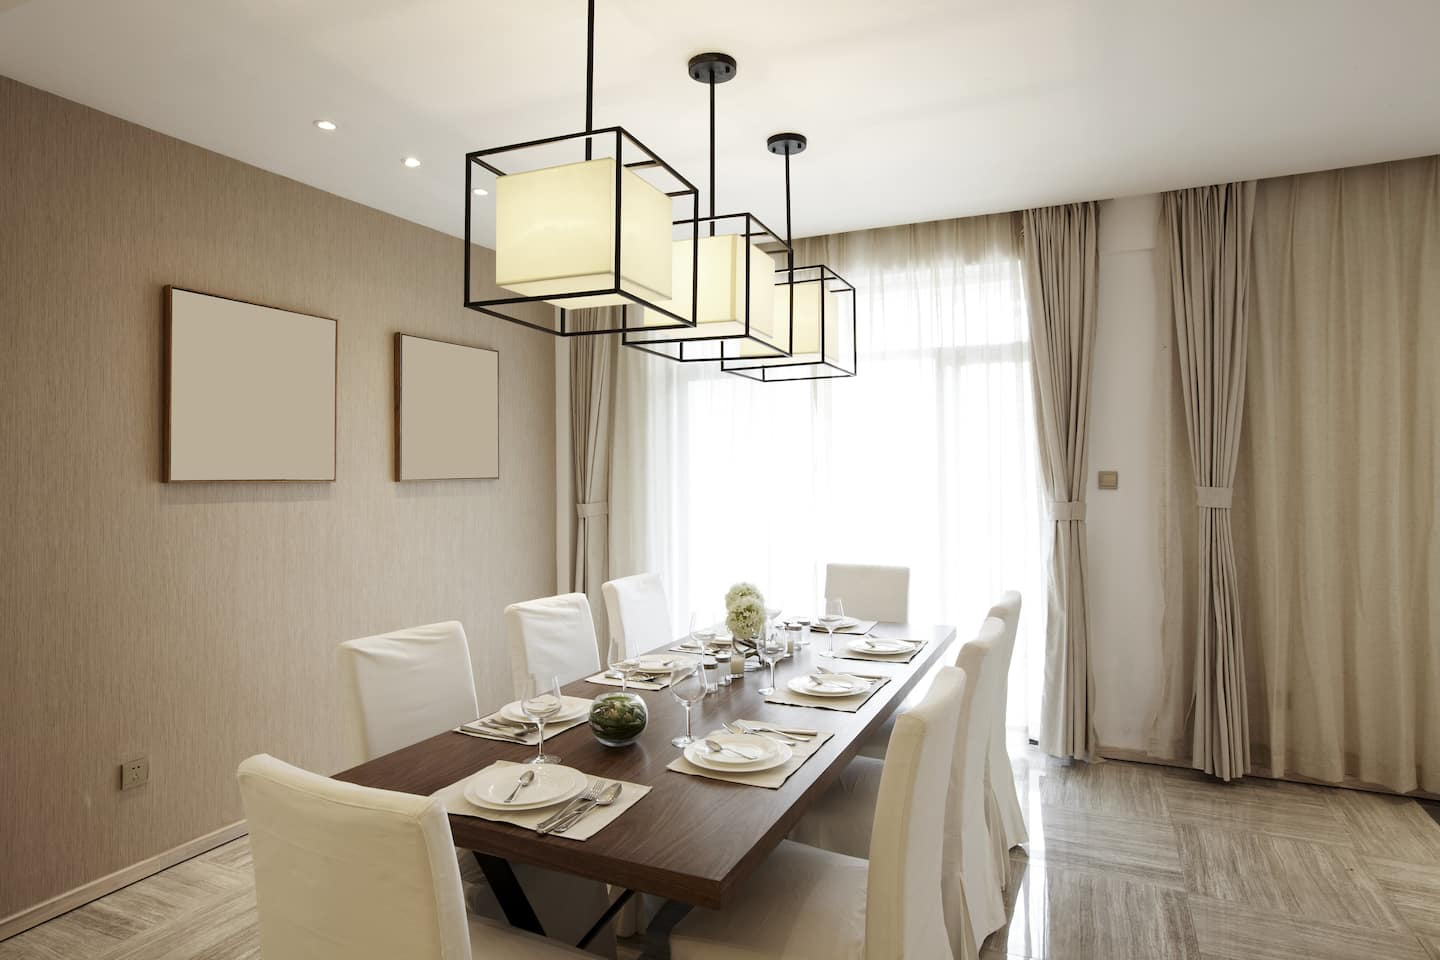 Bon Contemporary Formal Dining Room With Modern Elements, And Off White Drapes  Layered Over Sheer